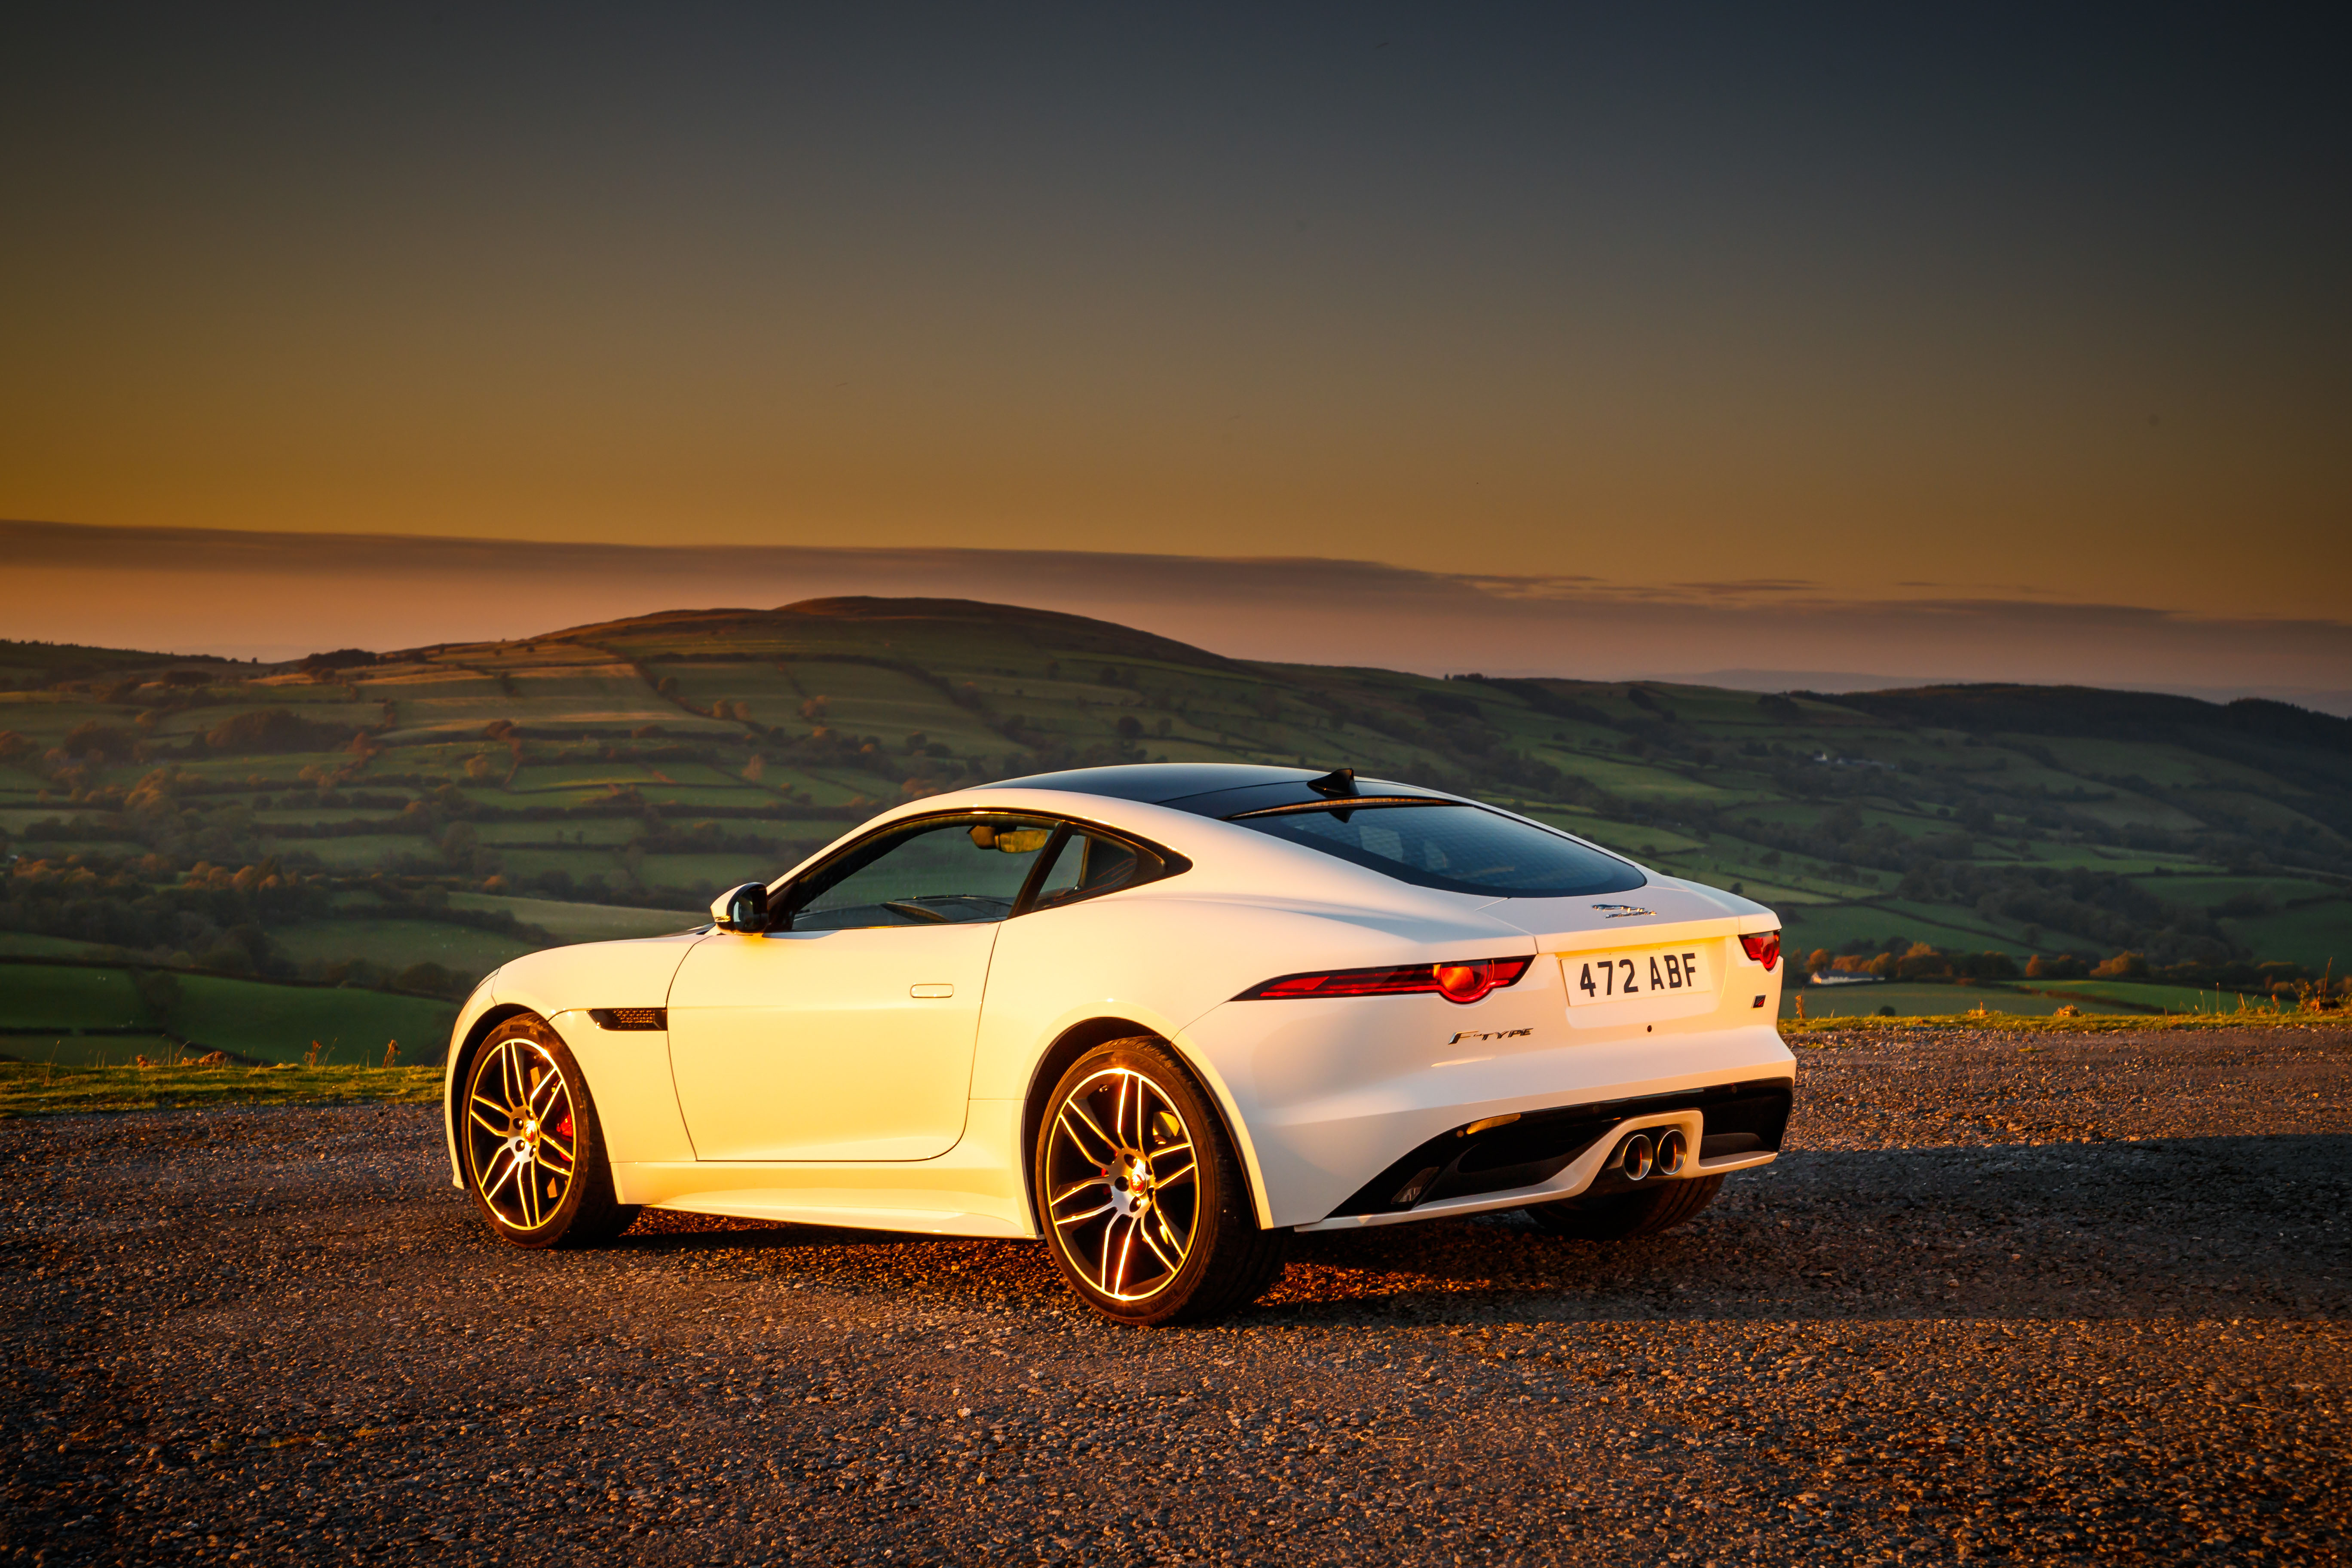 F Type Chequered Flag Celebrates 70 Years Of Jaguar Sports Cars